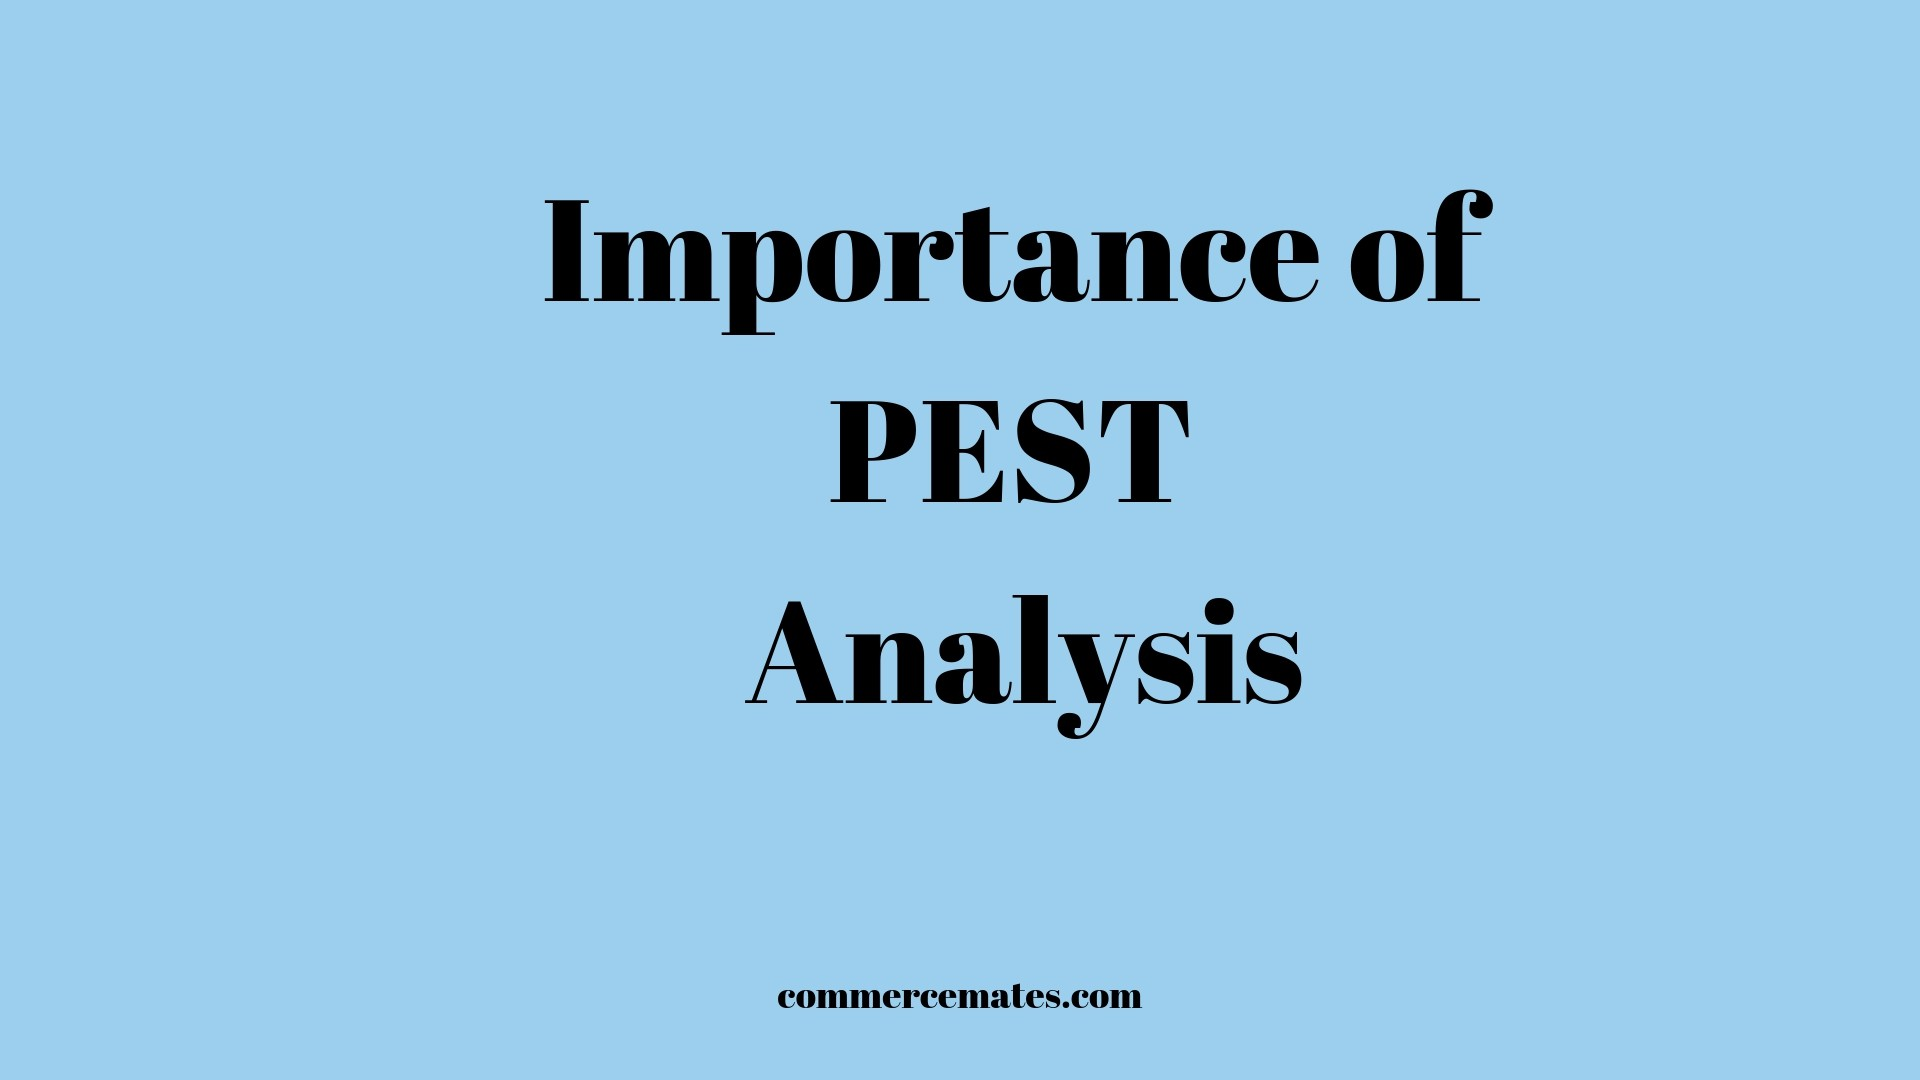 Importance of PEST Analysis